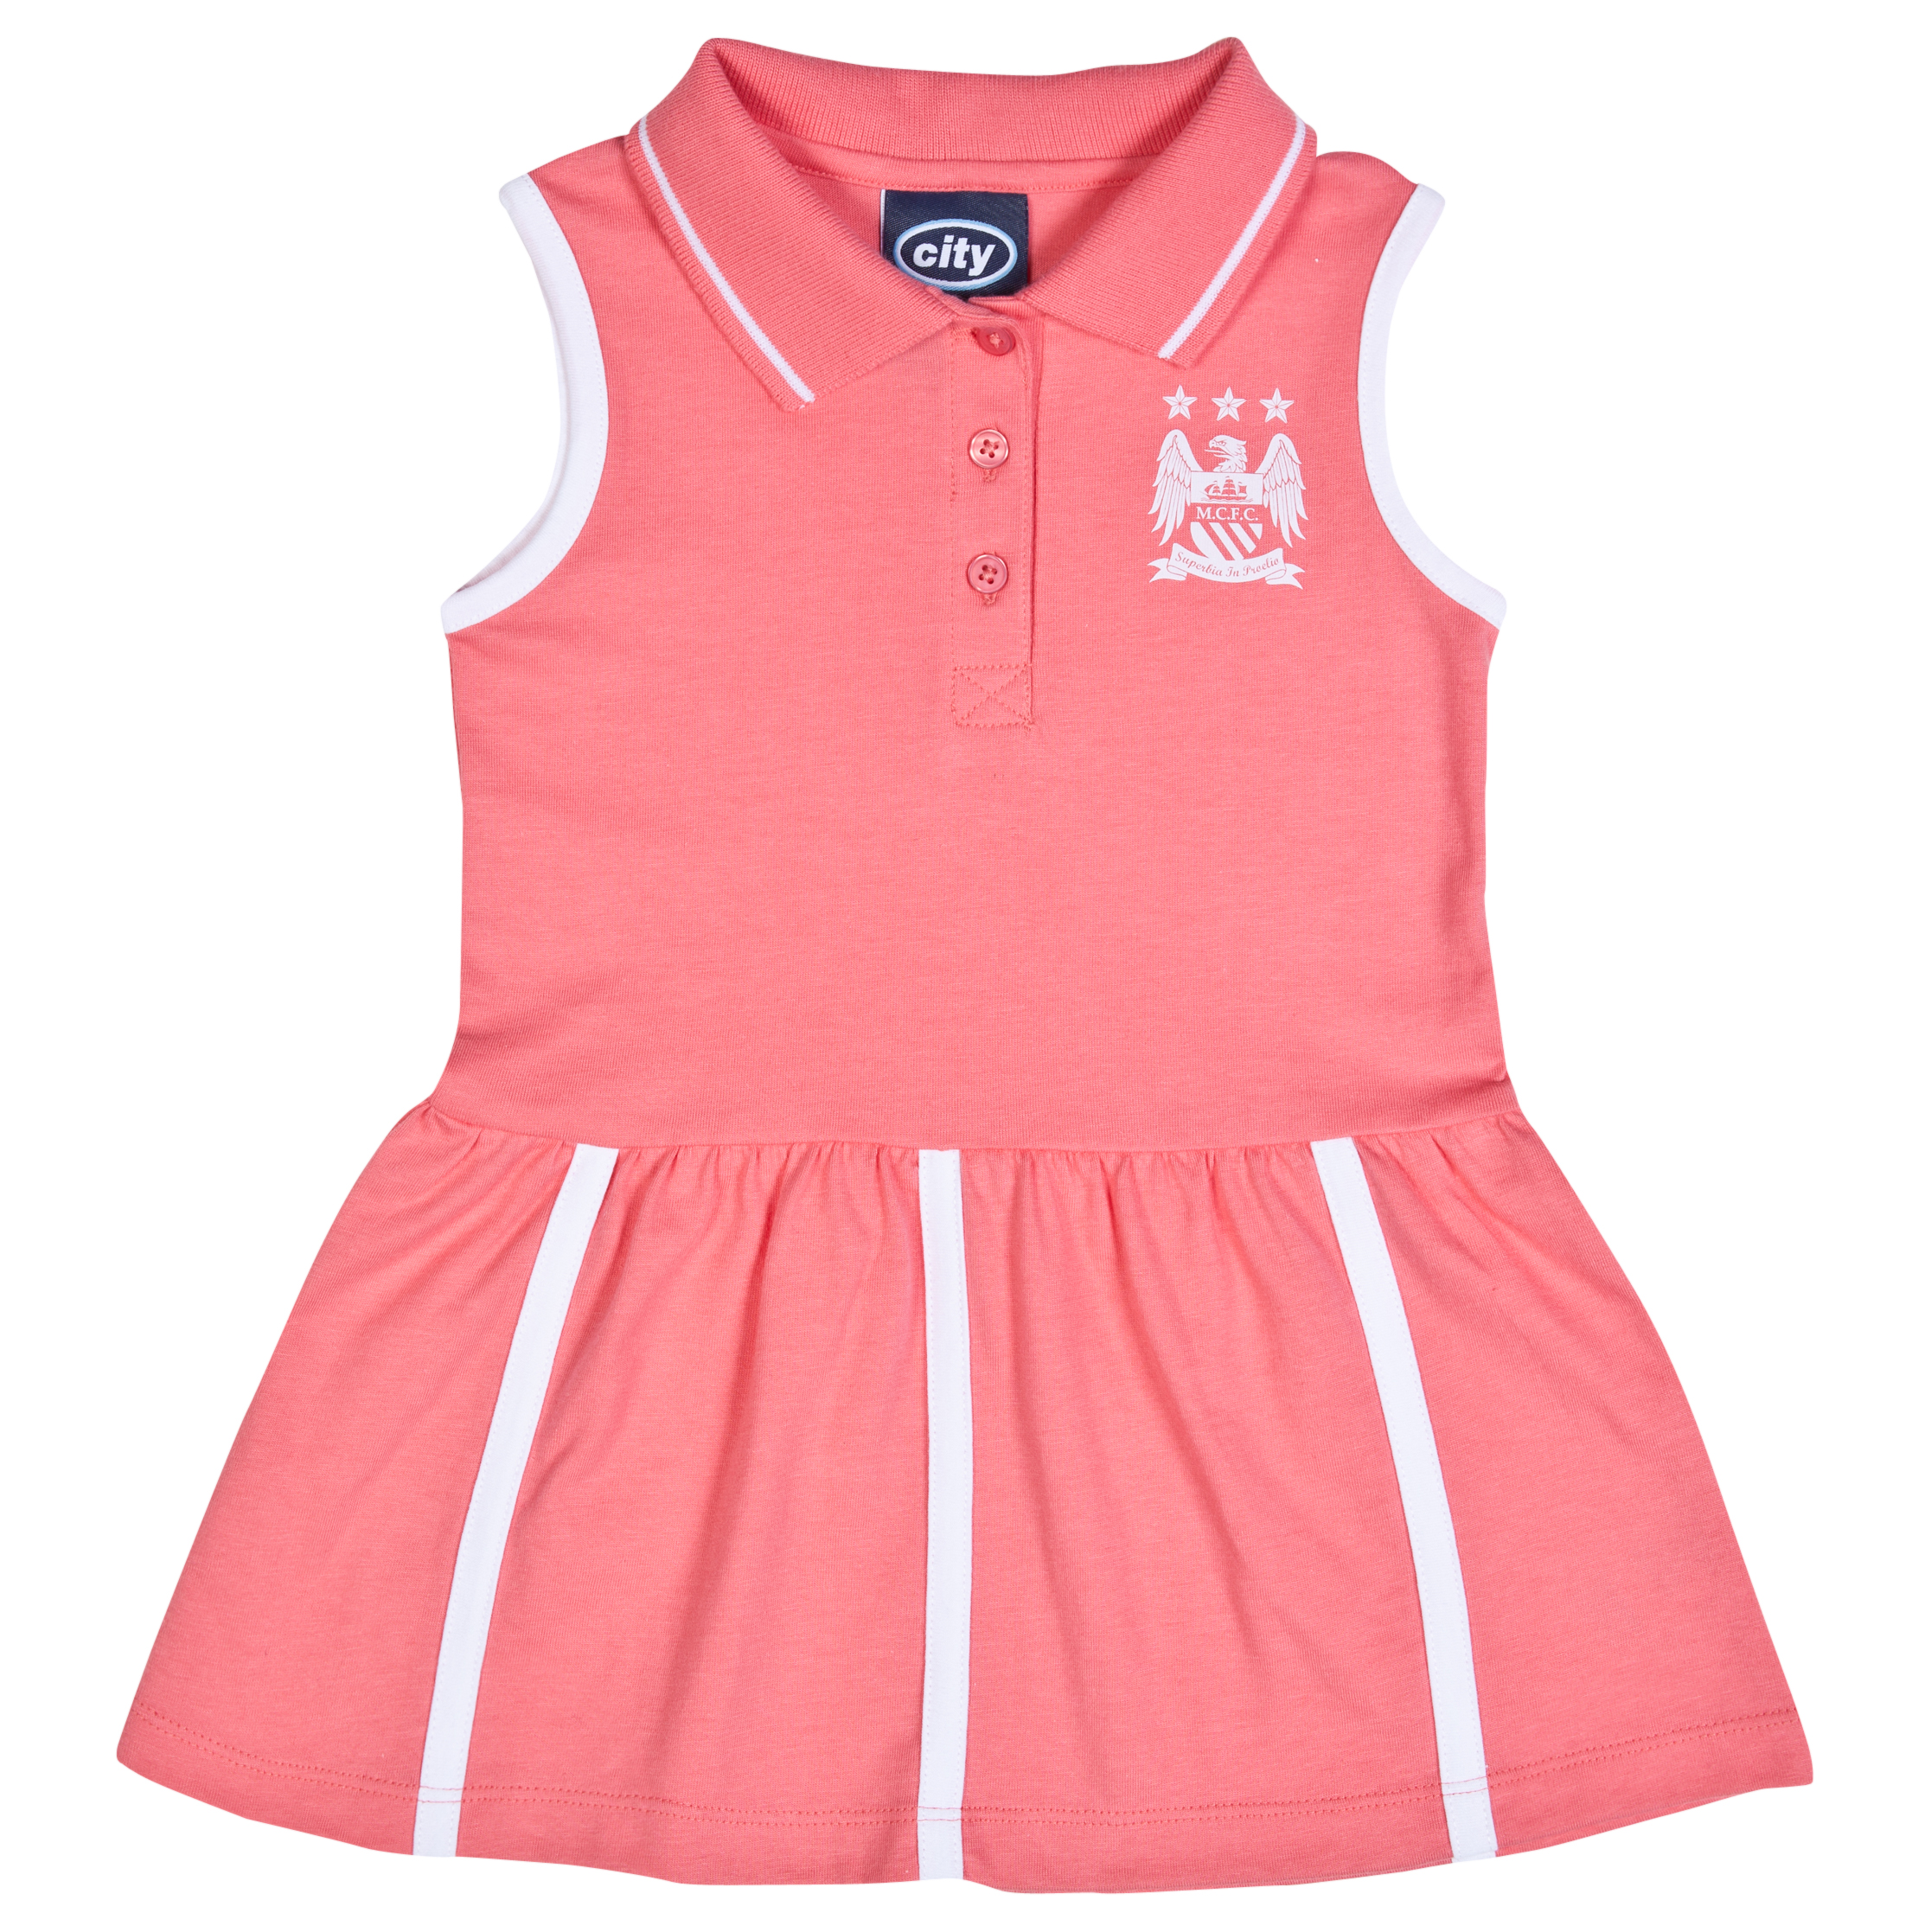 Manchester City Tilly Tennis Dress-Baby Pink